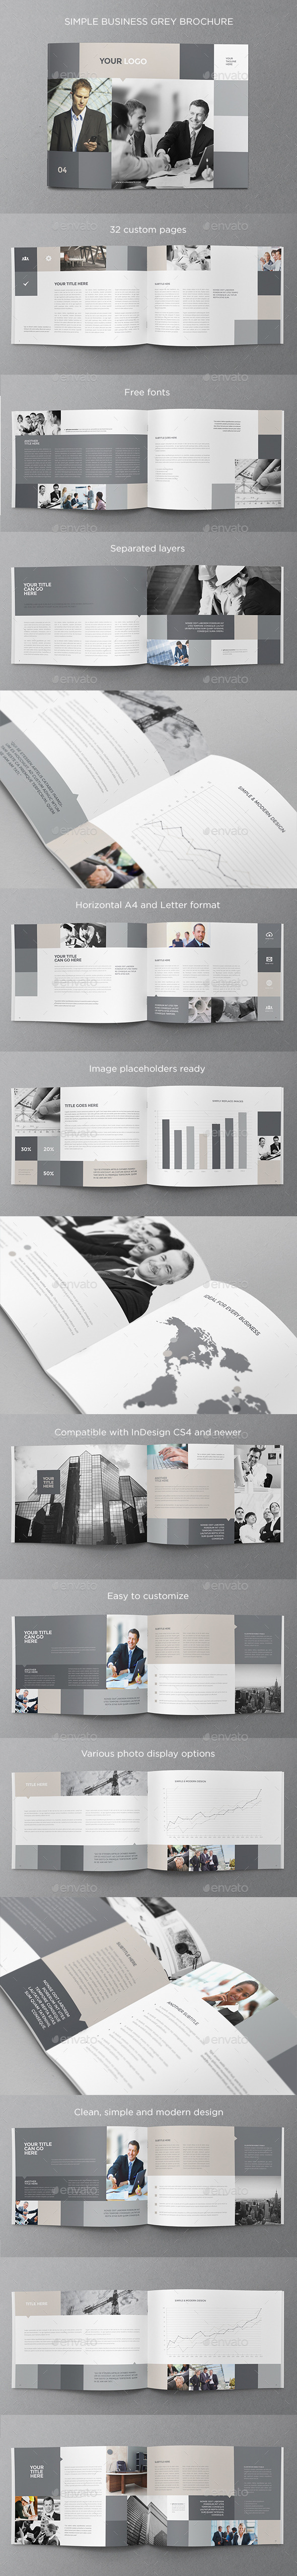 Simple Business Grey Brochure - Brochures Print Templates